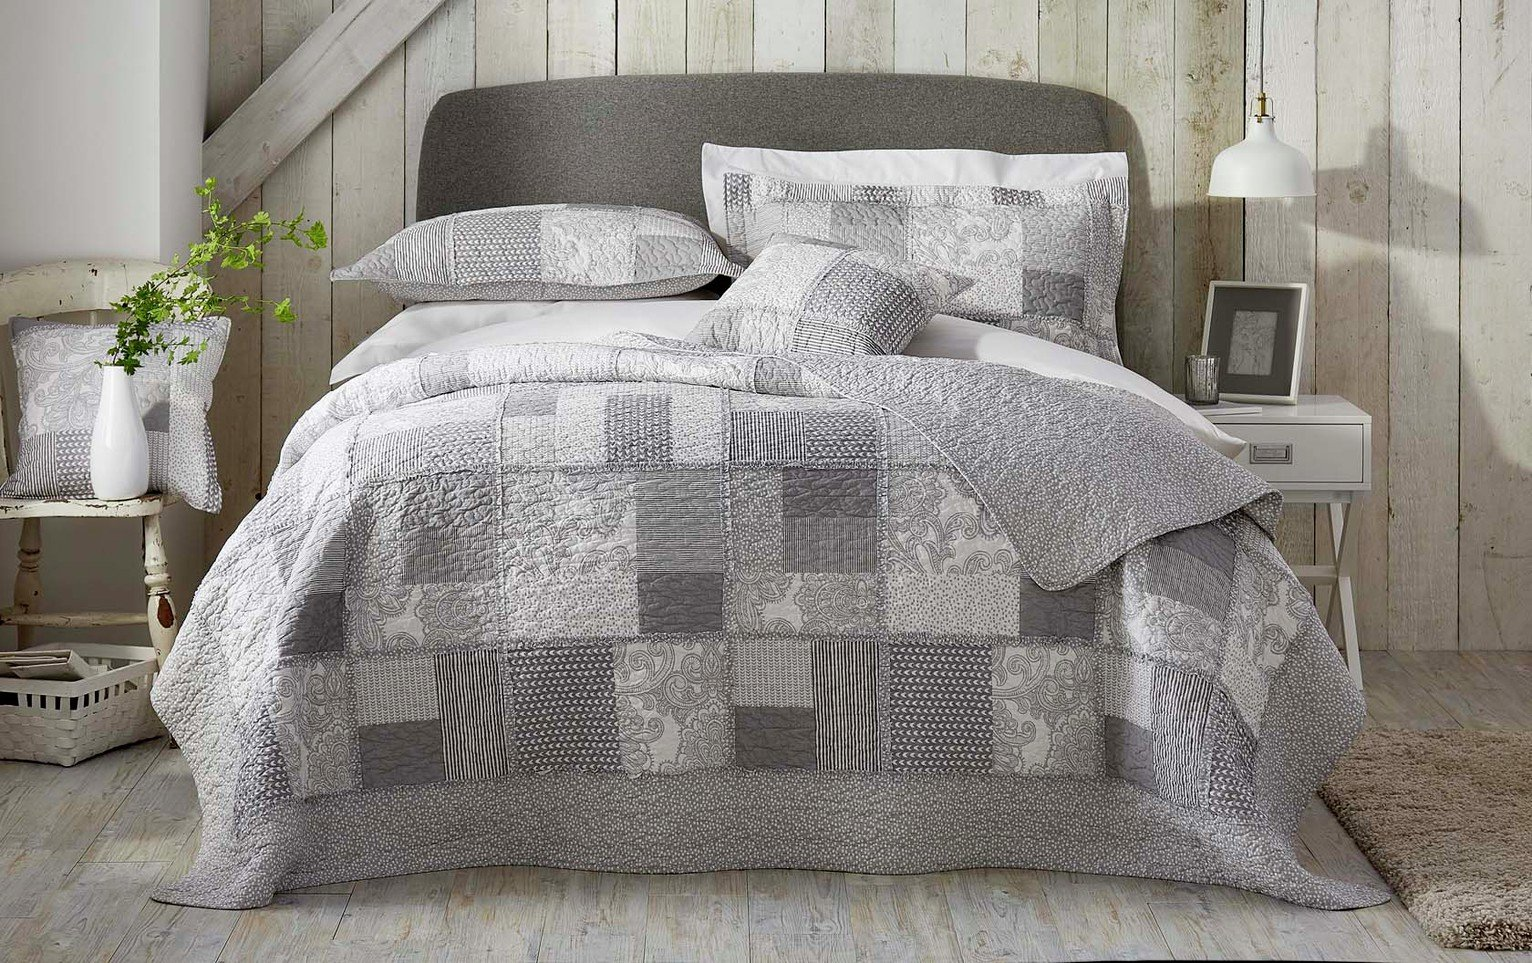 Image of Appletree Satira Bedspread - Grey